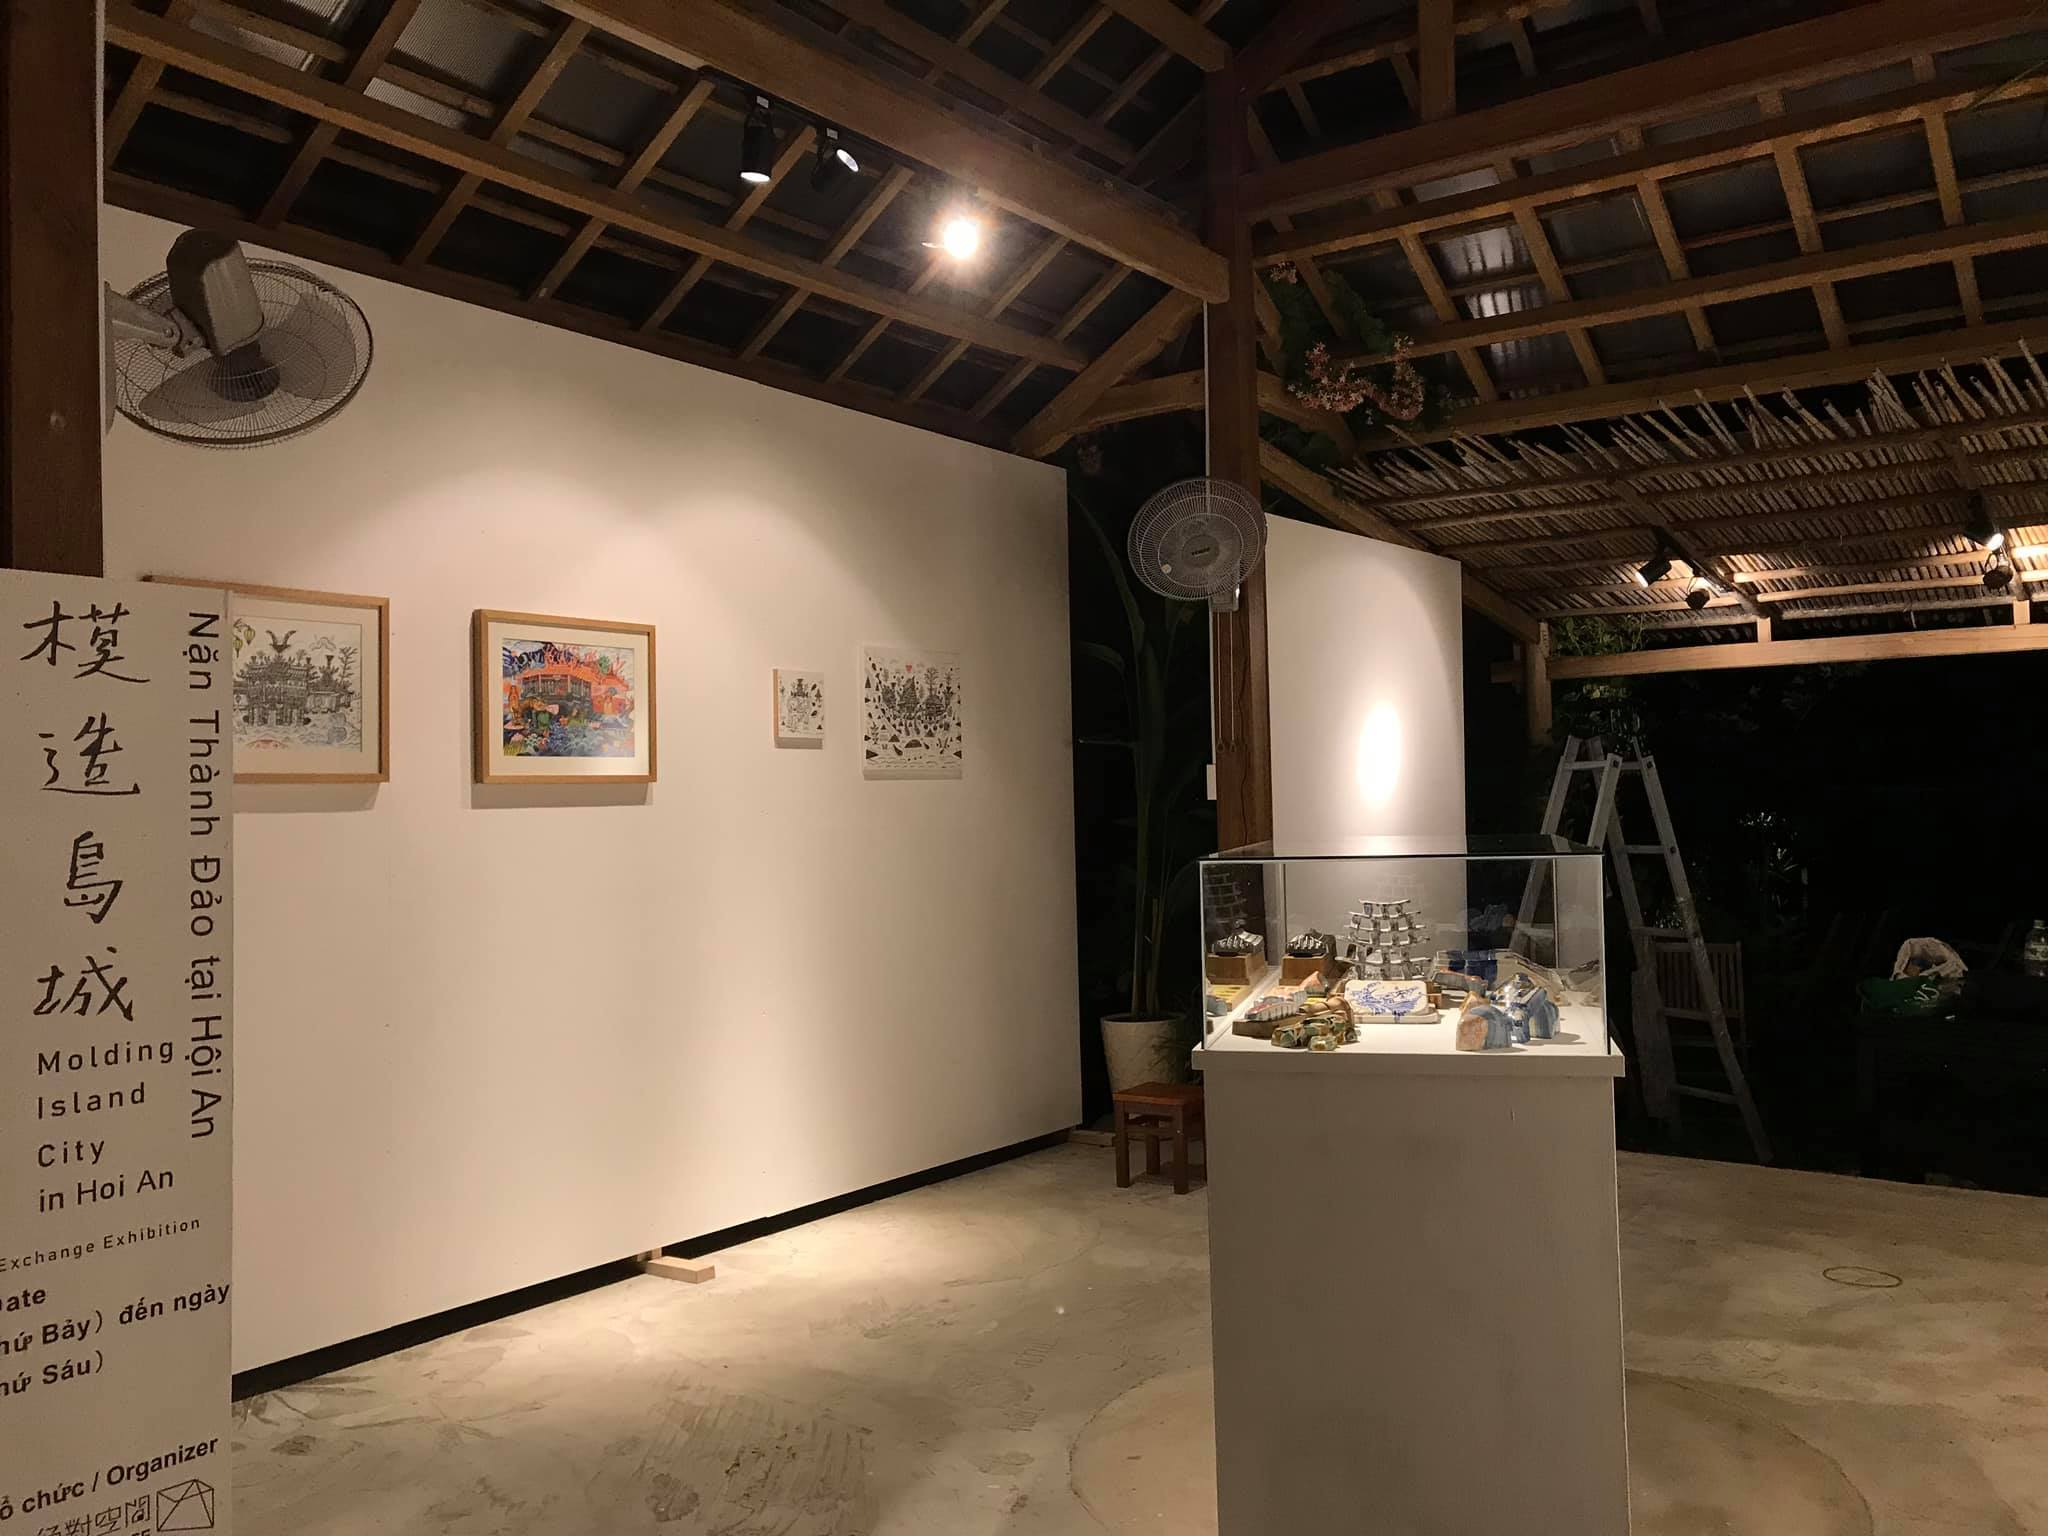 Artworks are displayed at the Molding Island City exhibition in Hoi An, central Vietnam